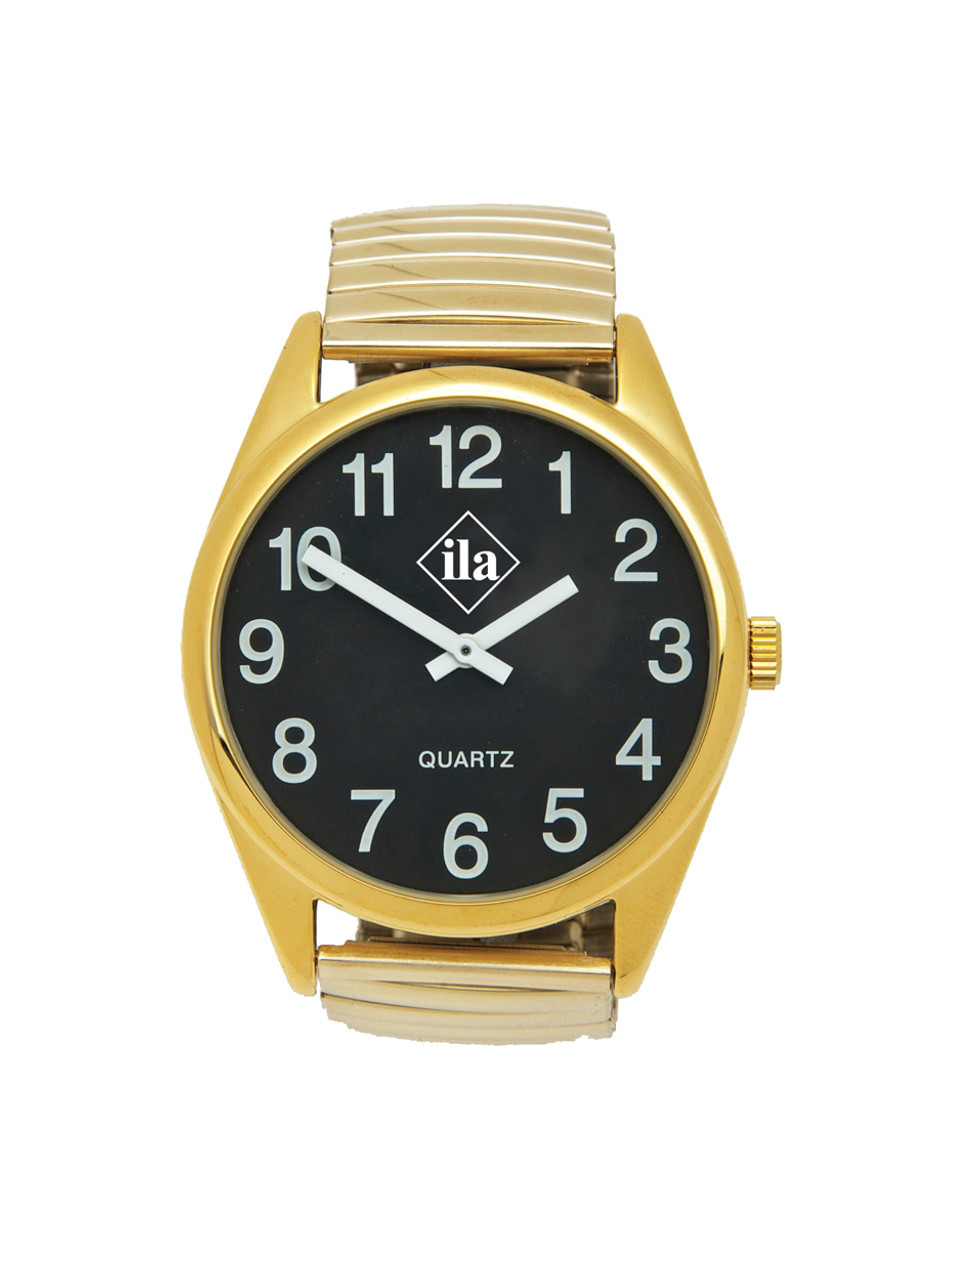 Low Vision Gold Tone Watch With Black Face and Expansion Band